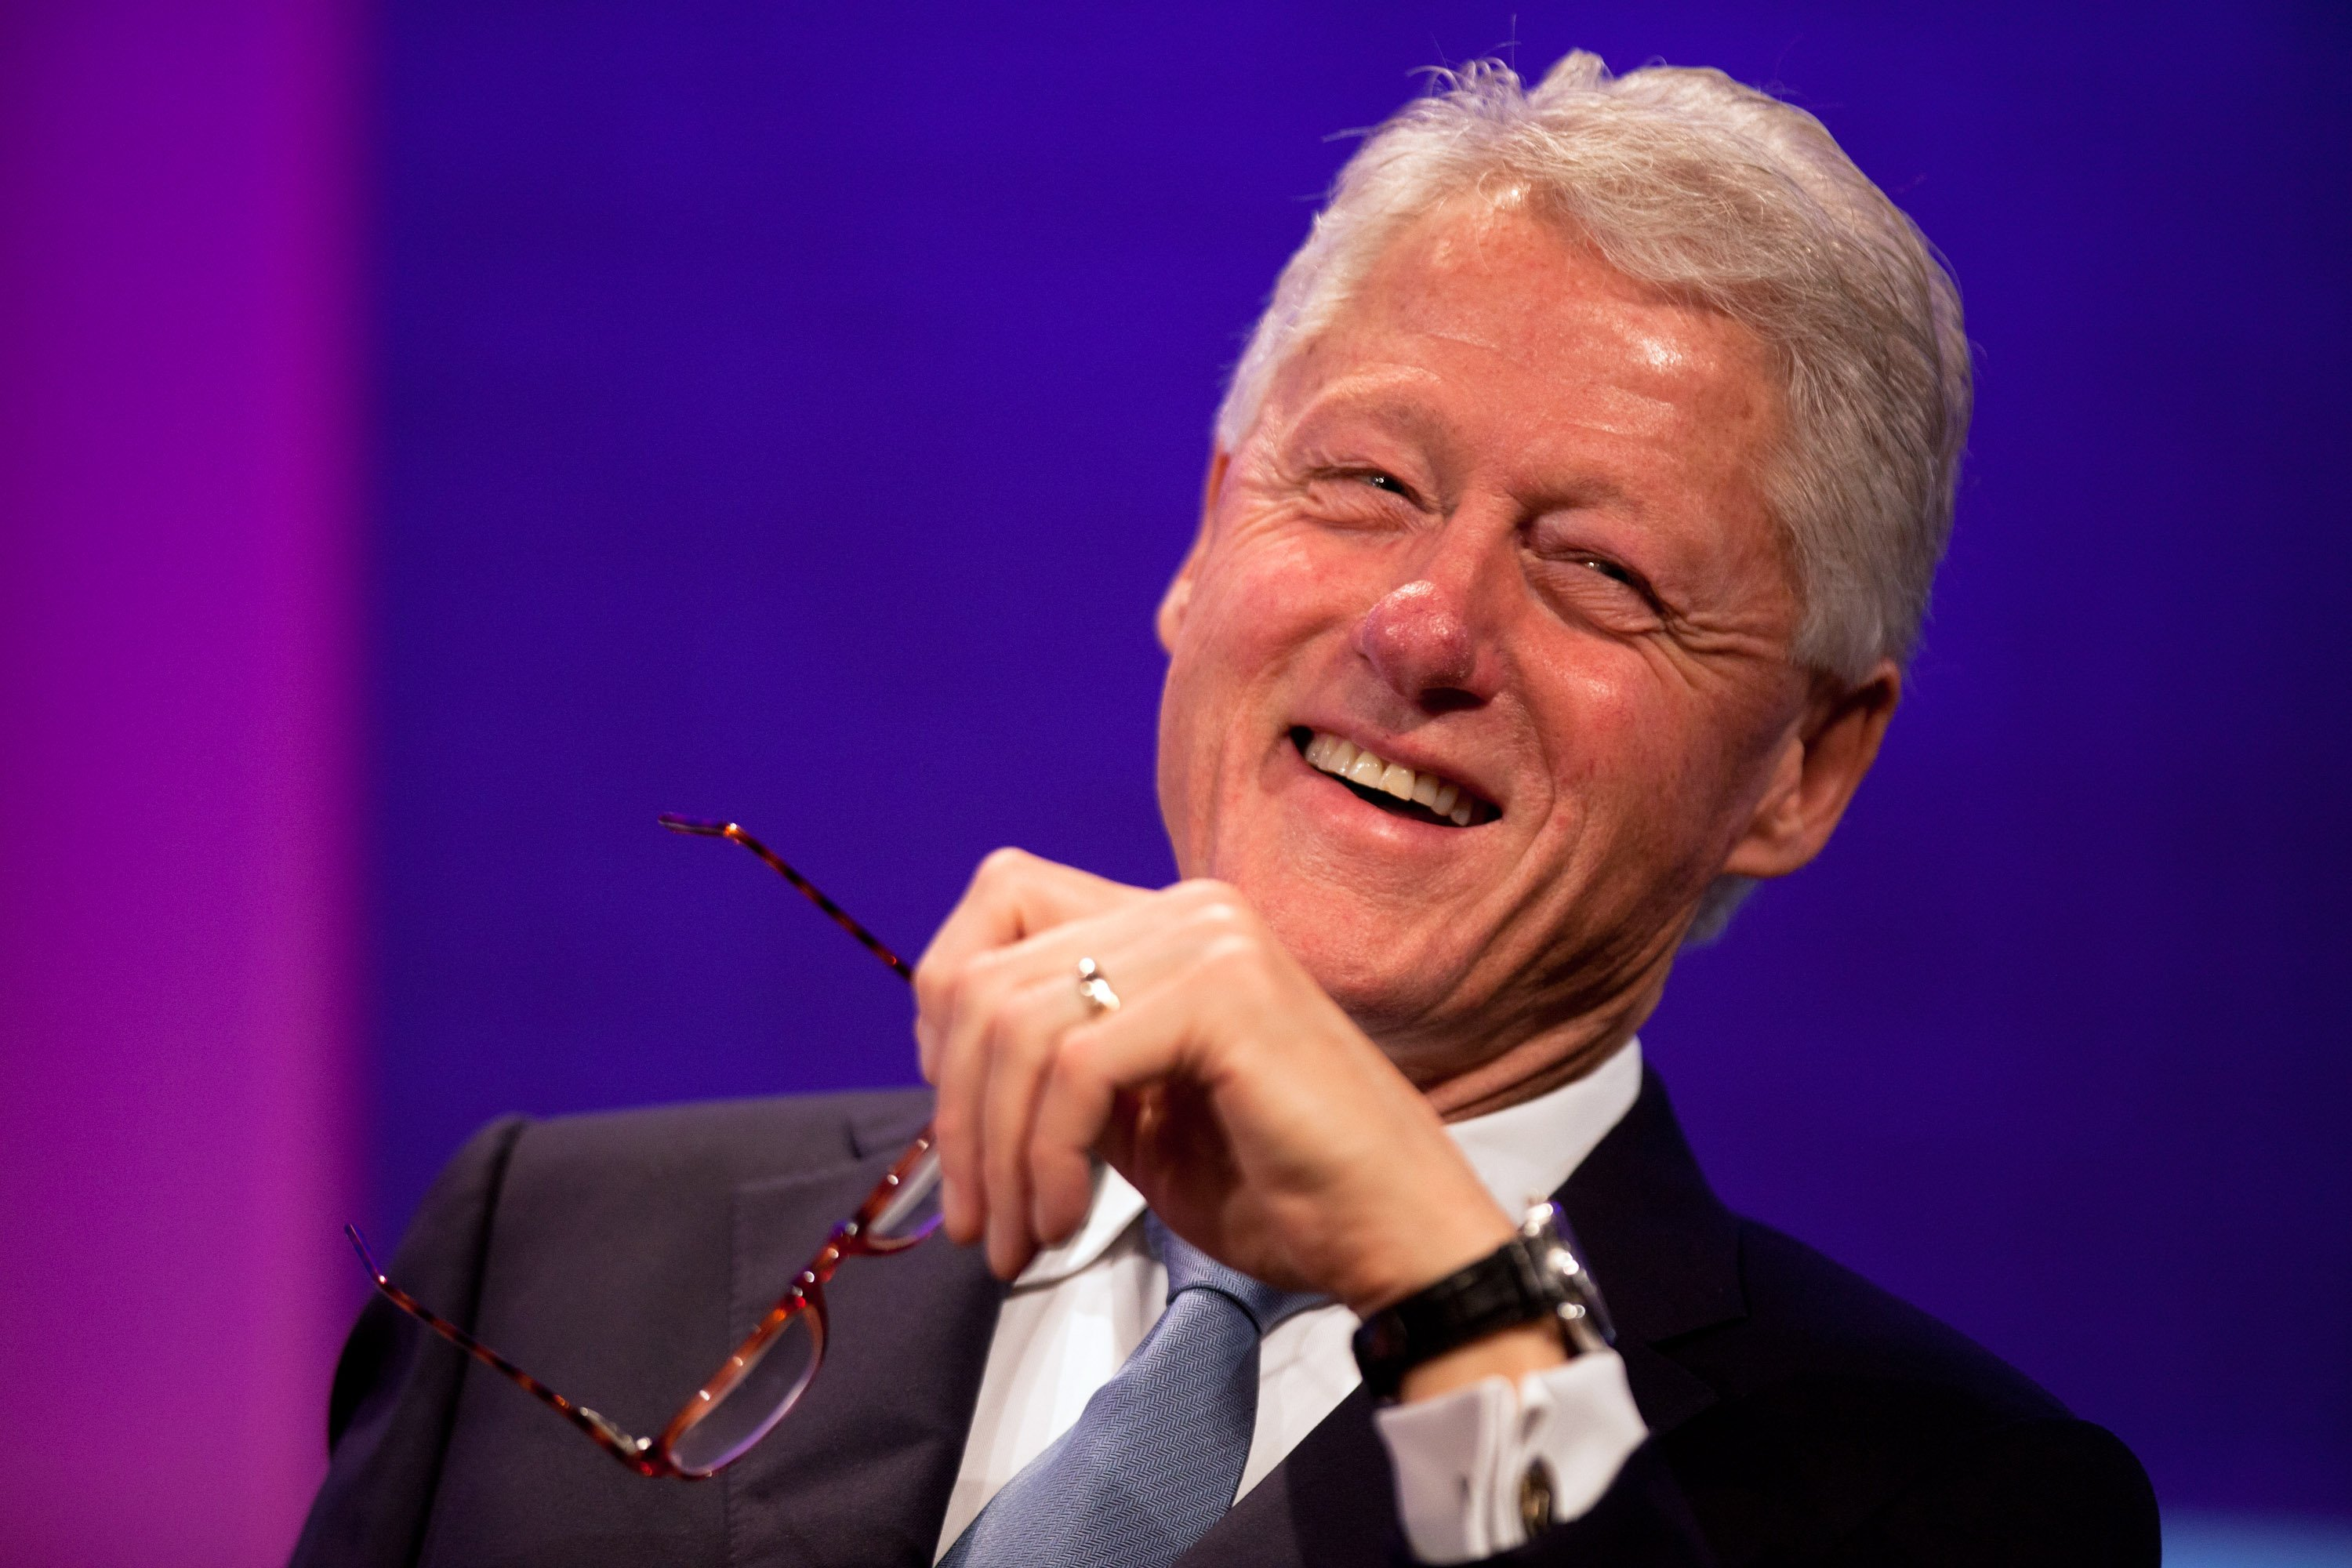 Bill Clinton at the Leaders Dialogue on Climate Change at the Sheraton New York Hotel on September 20, 2011 in New York City | Photo: Getty Images